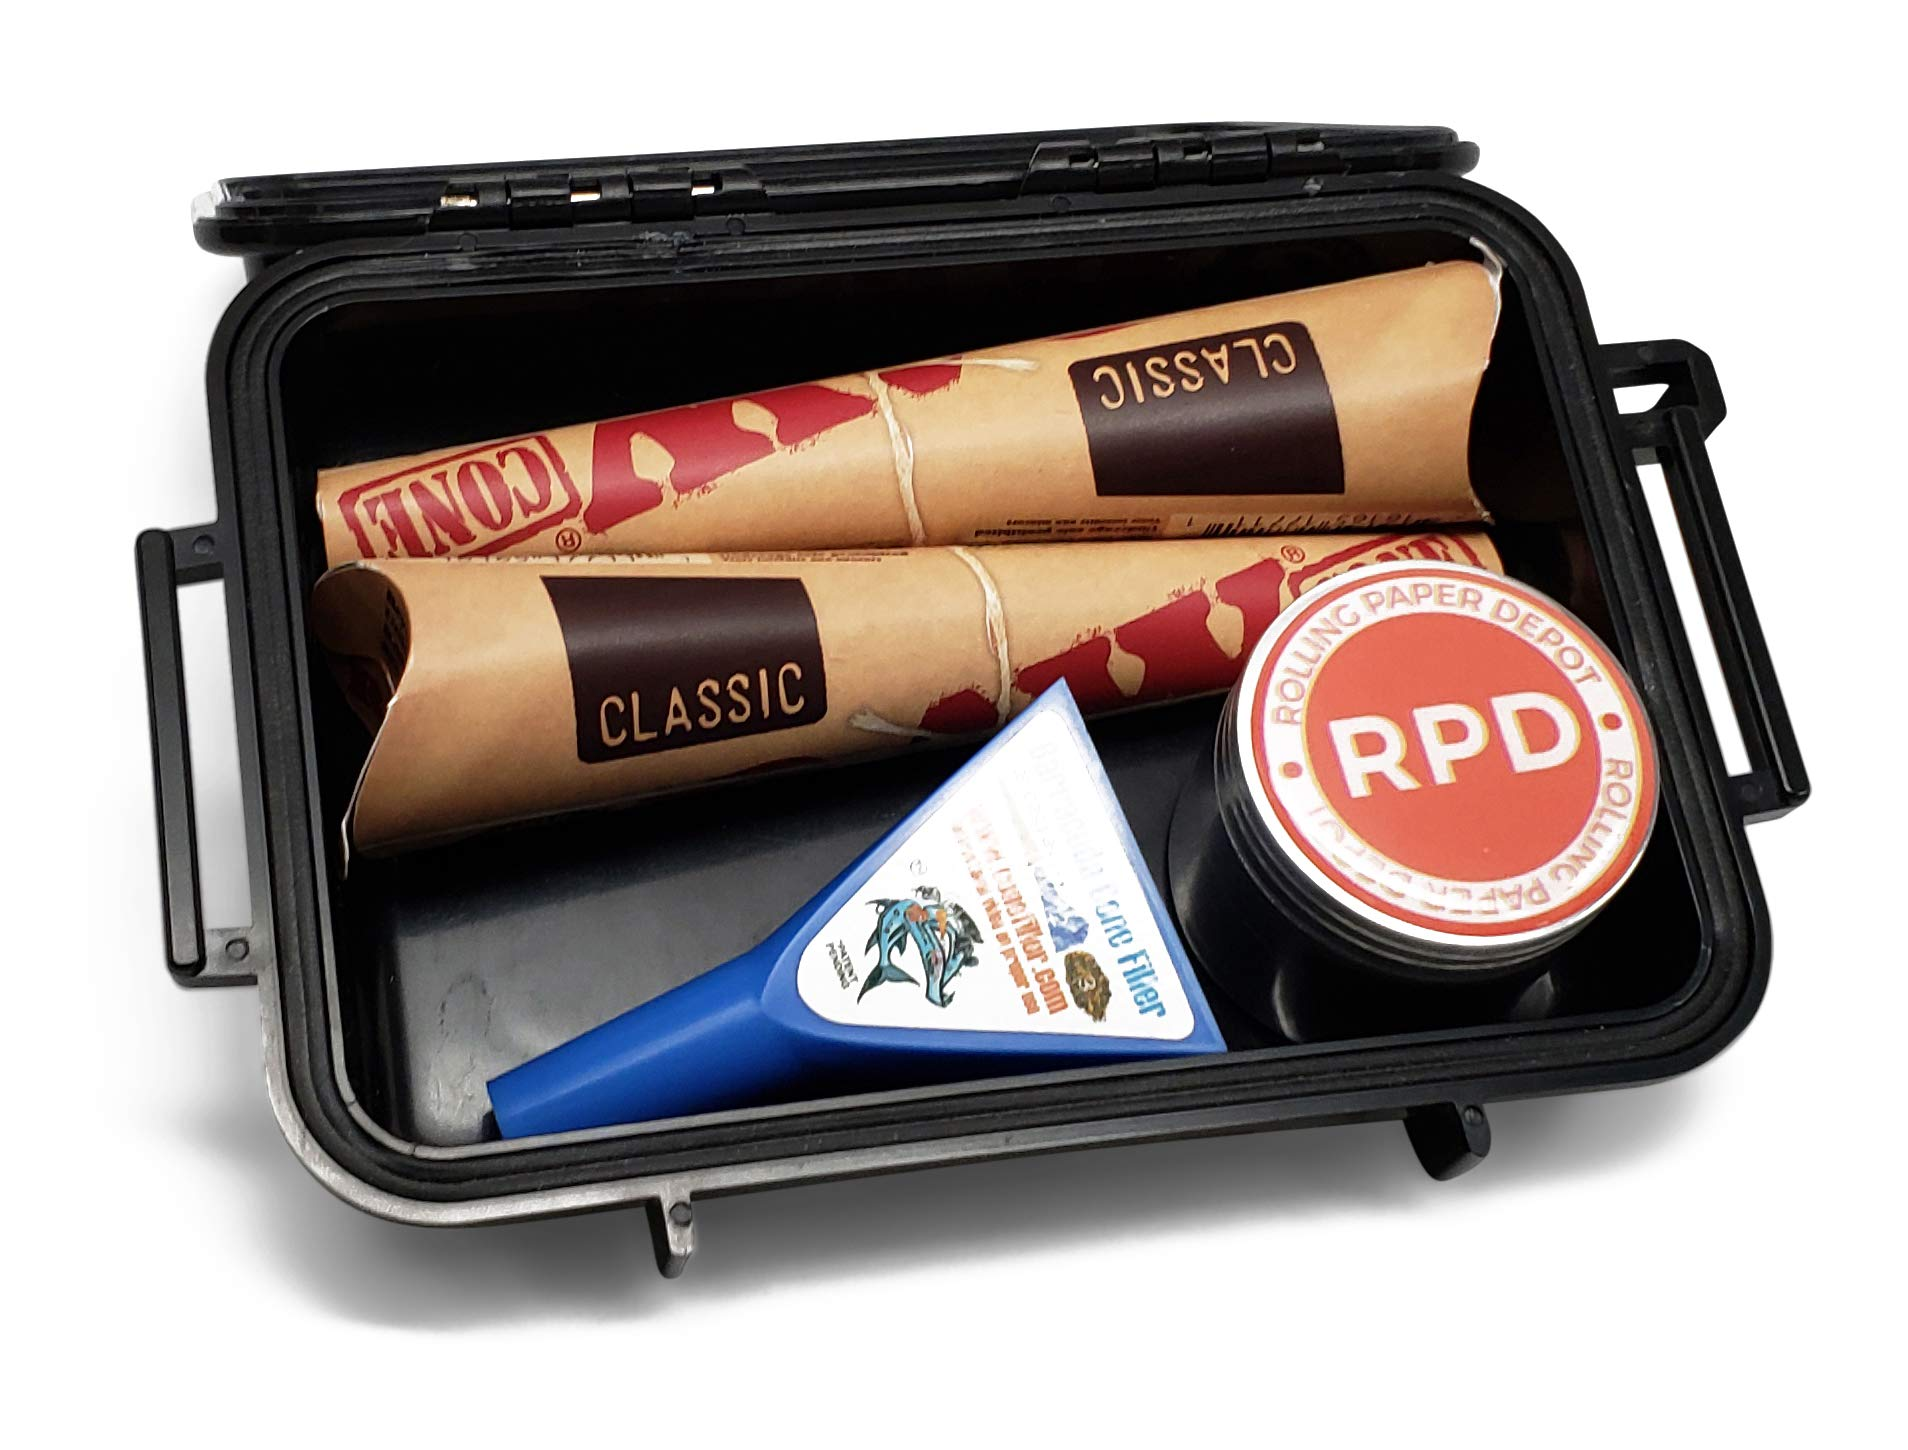 RAW Pre Rolled Cones 1 1/4 (2 Packs of 6) with Leaf Lock Gear Airtight Travel Case, Barracuda Cone Filler and Rolling Paper Depot 42mm Grinder - 5 Item Bundle